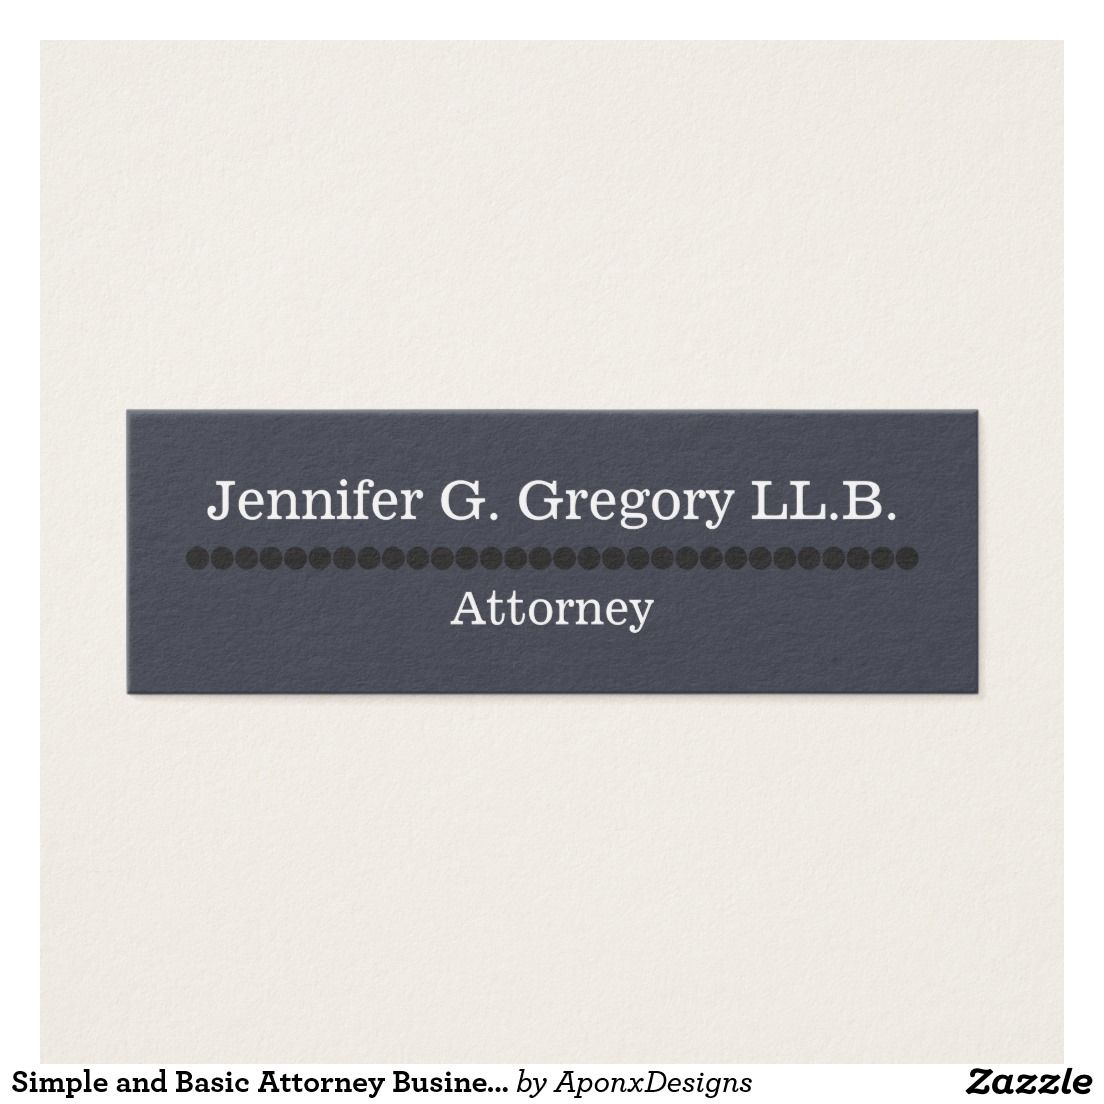 Simple And Basic Attorney Business Card Zazzle Com Attorney Business Cards Simple Business Cards Business Card Design Simple